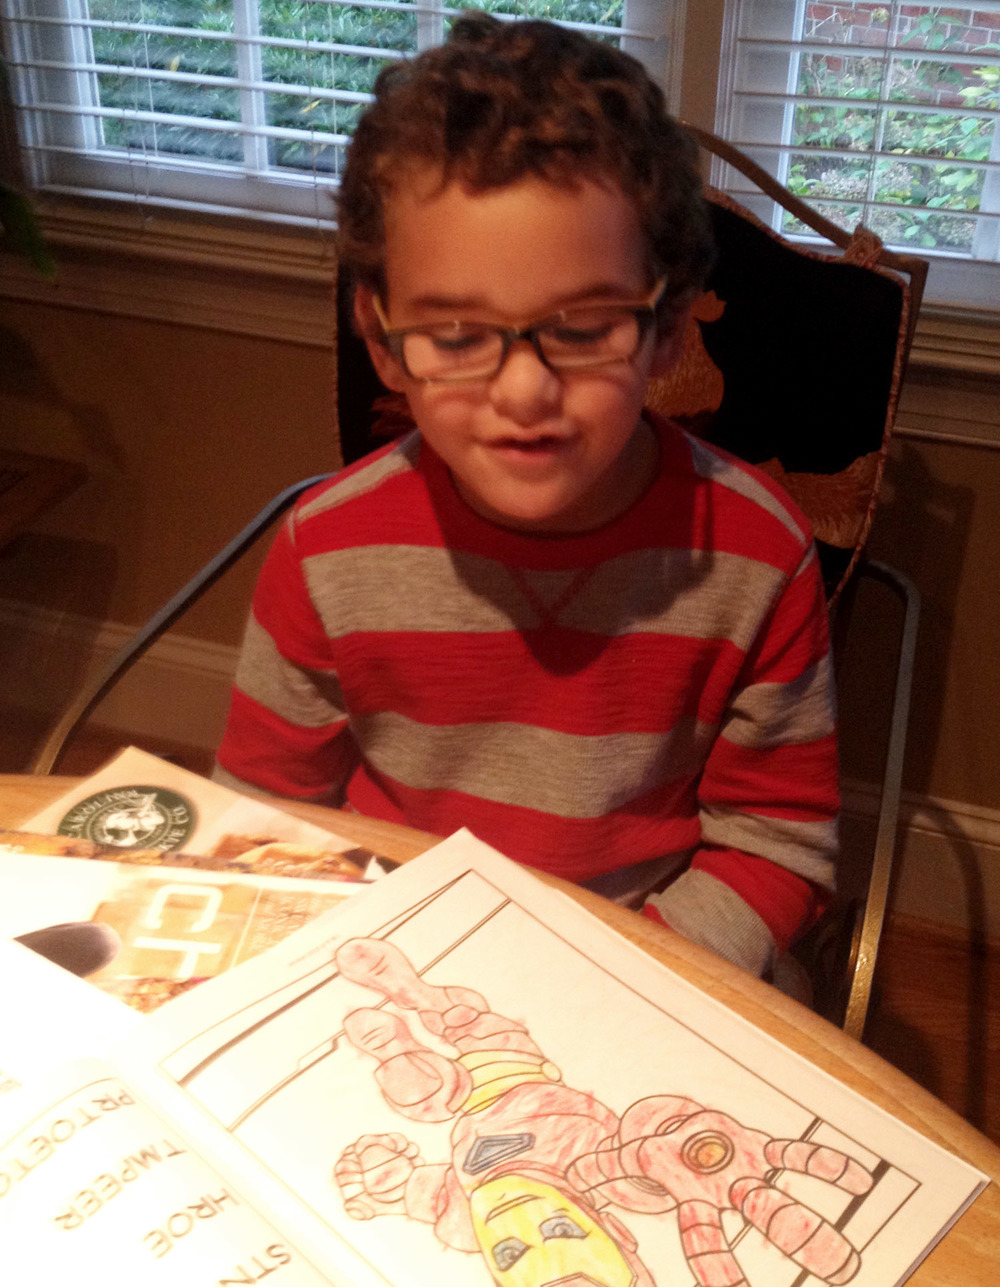 Rami likes to color super heroes. And he is working out the details of his new band. I did not know until today that he wanted a band. Or in fact, that he even knew the names of any bands. It seems I have some adjusting to do.